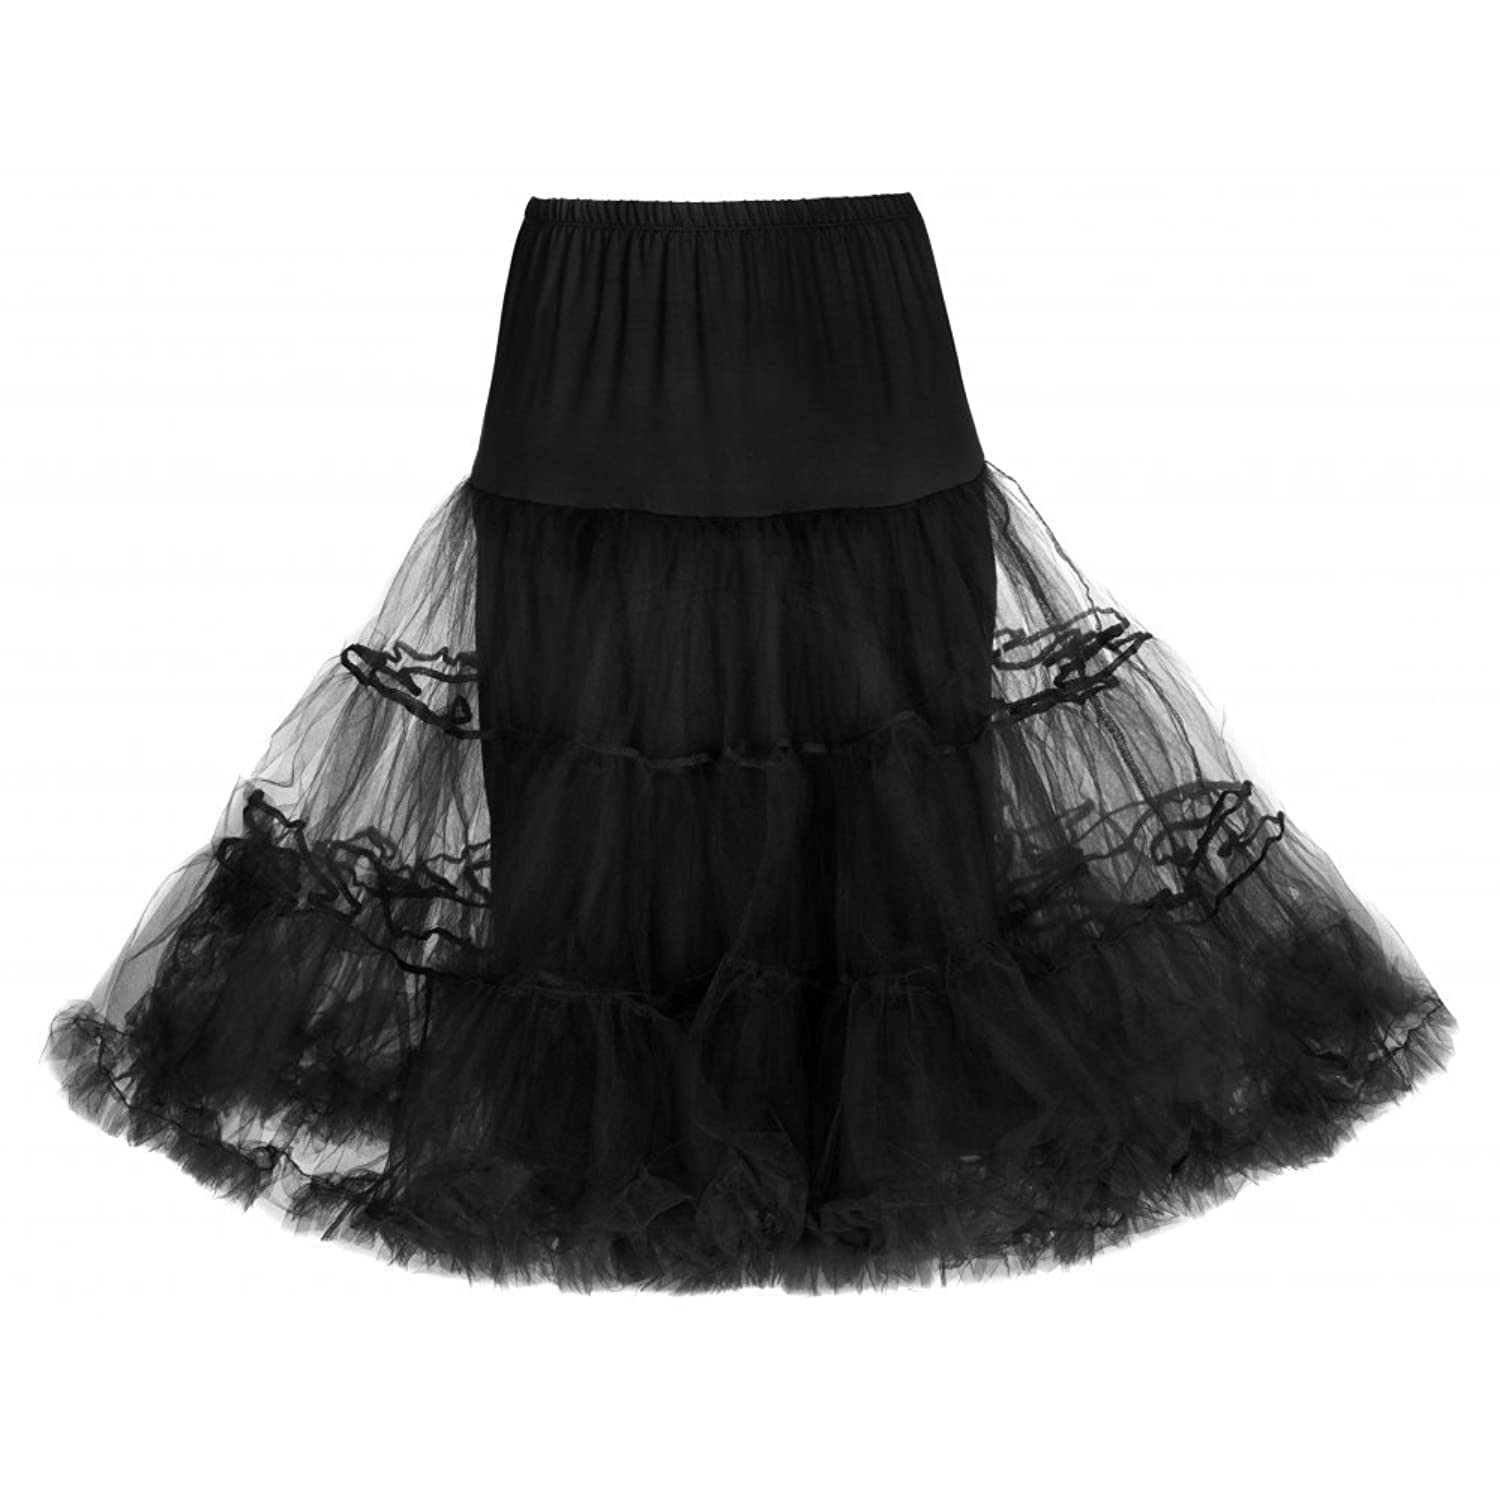 What Did Women Wear in the 1950s? Lindy Bop Classic 26 Organza Petticoat $12.00 AT vintagedancer.com